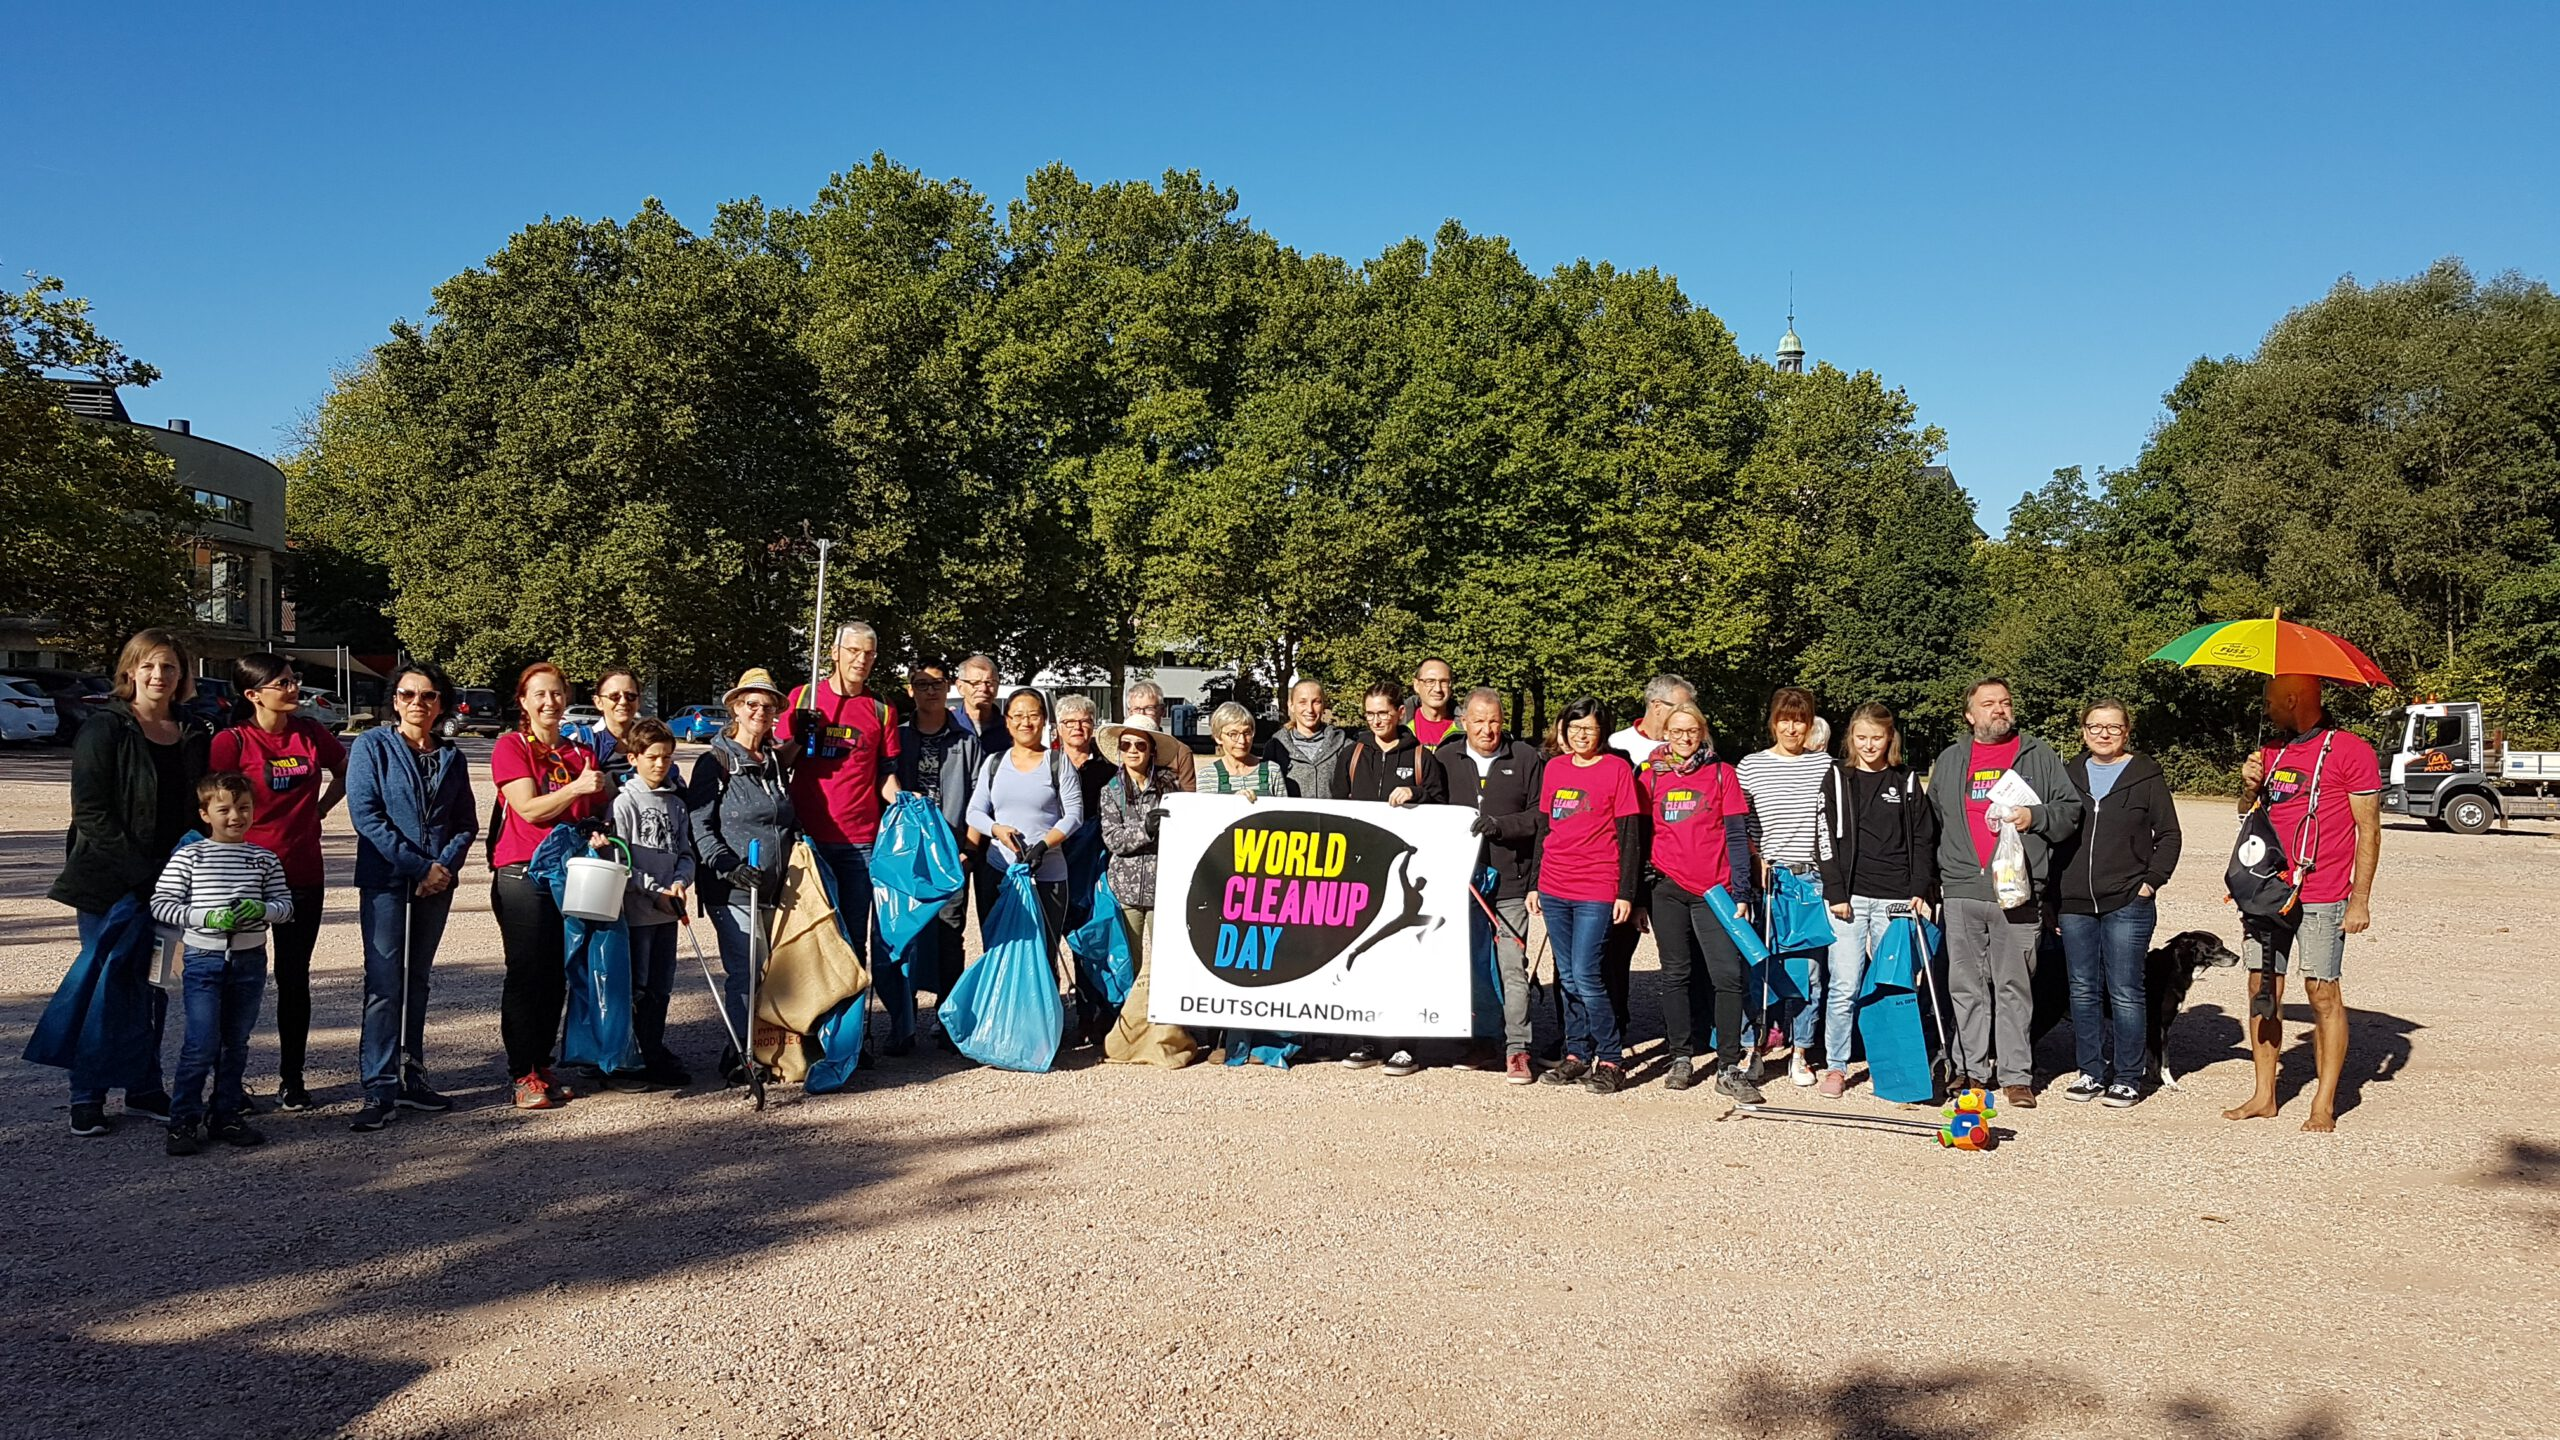 World Cleanup Day in Illingen